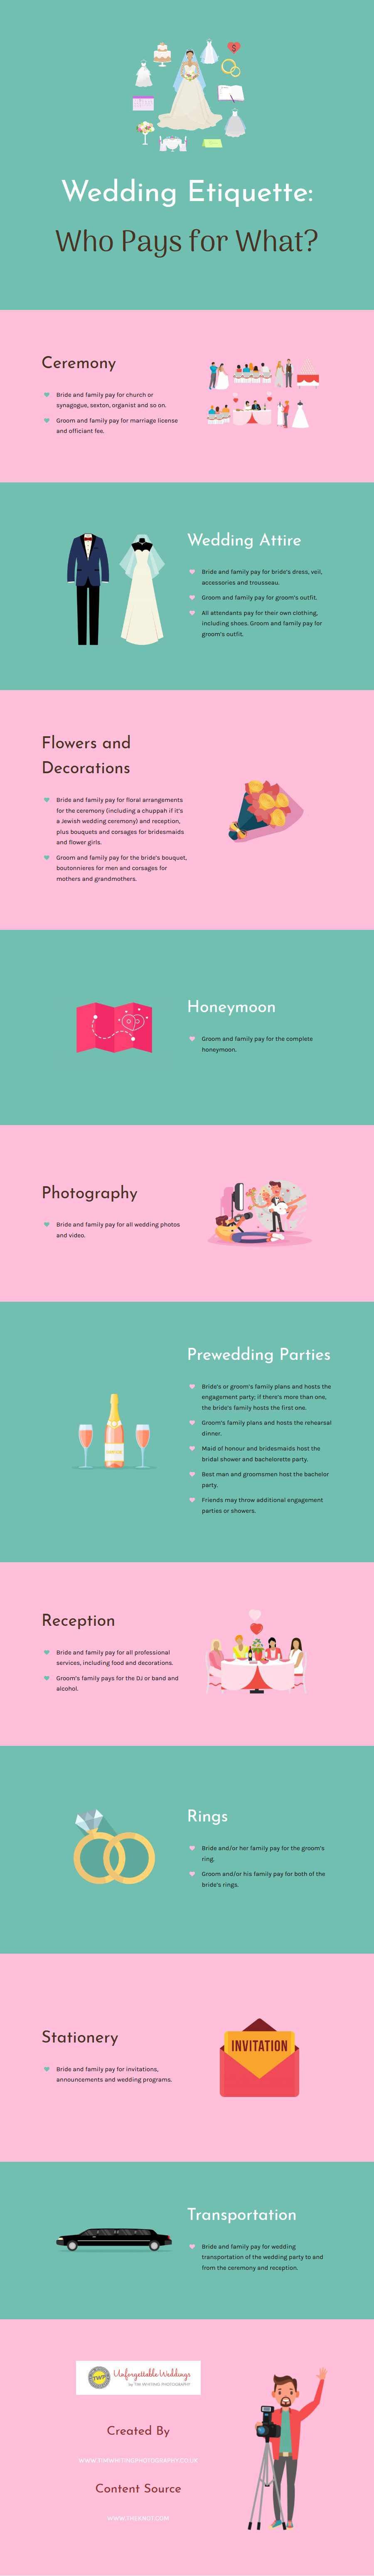 Wedding Etiquette Who Pays for What.jpg